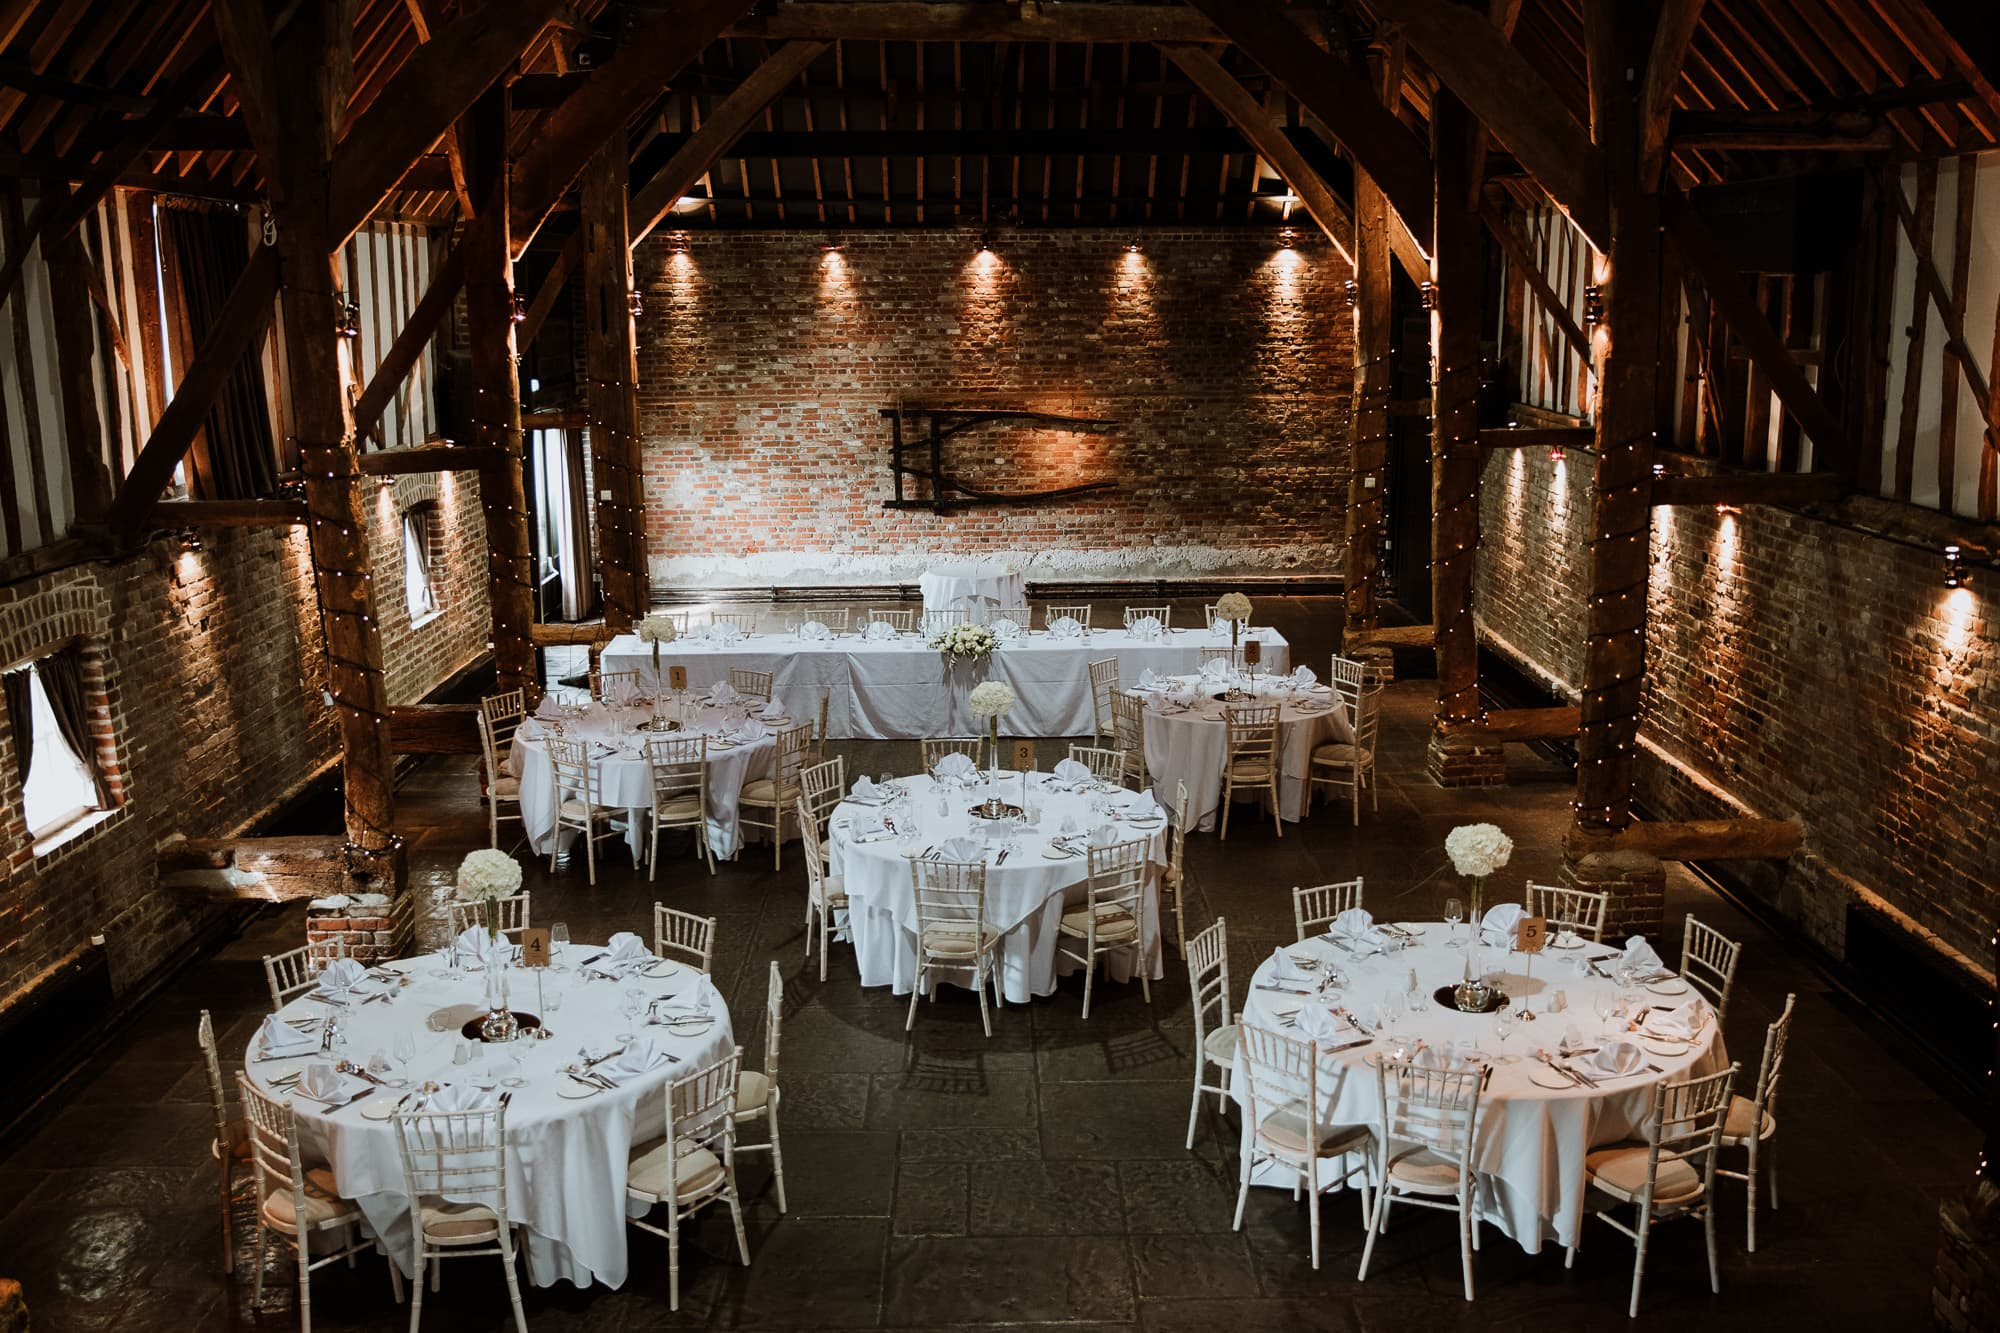 Cooling Castle Barn dressed for a wedding breakfast